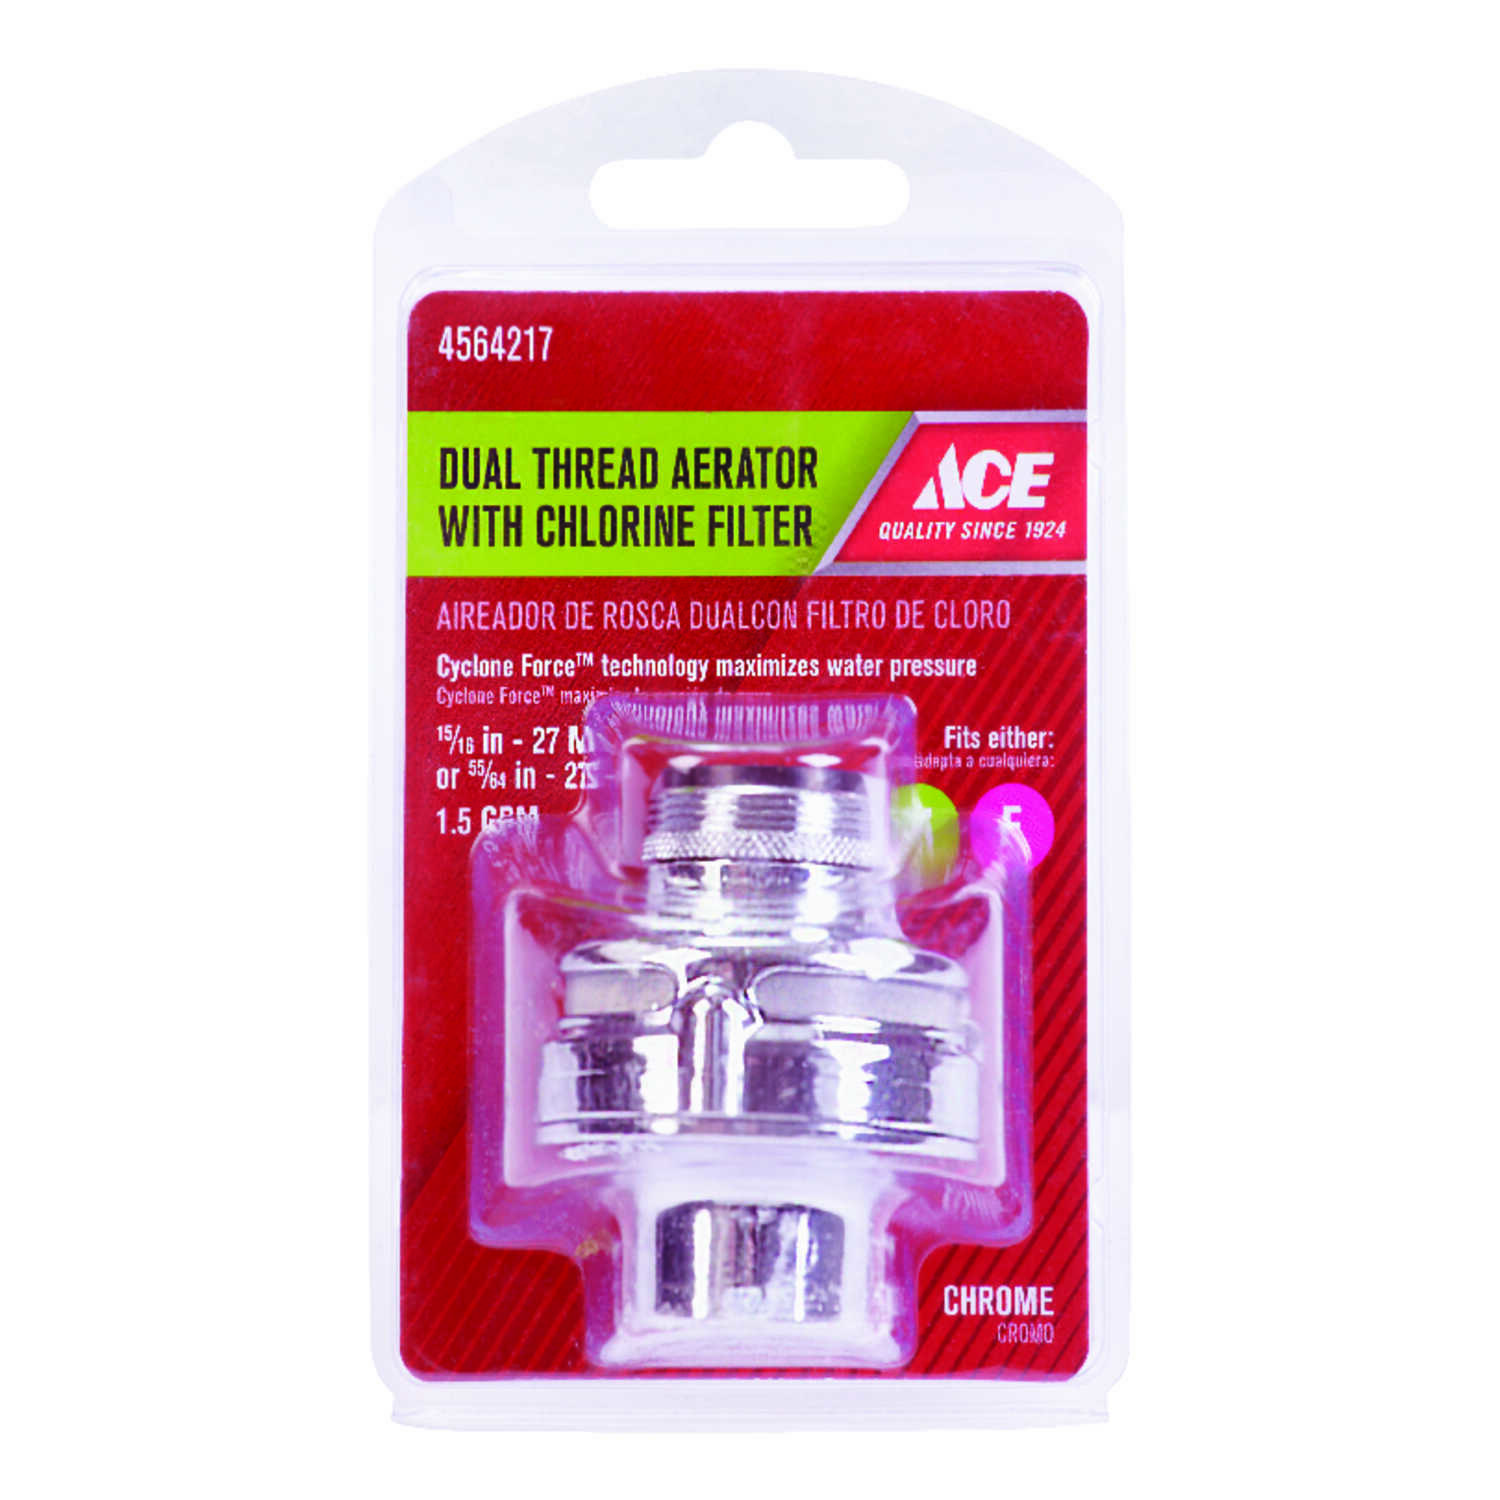 Ace  Chlorine Filter Dual Thread Aerator  15/16 in.  x 55/64 in.  Chrome